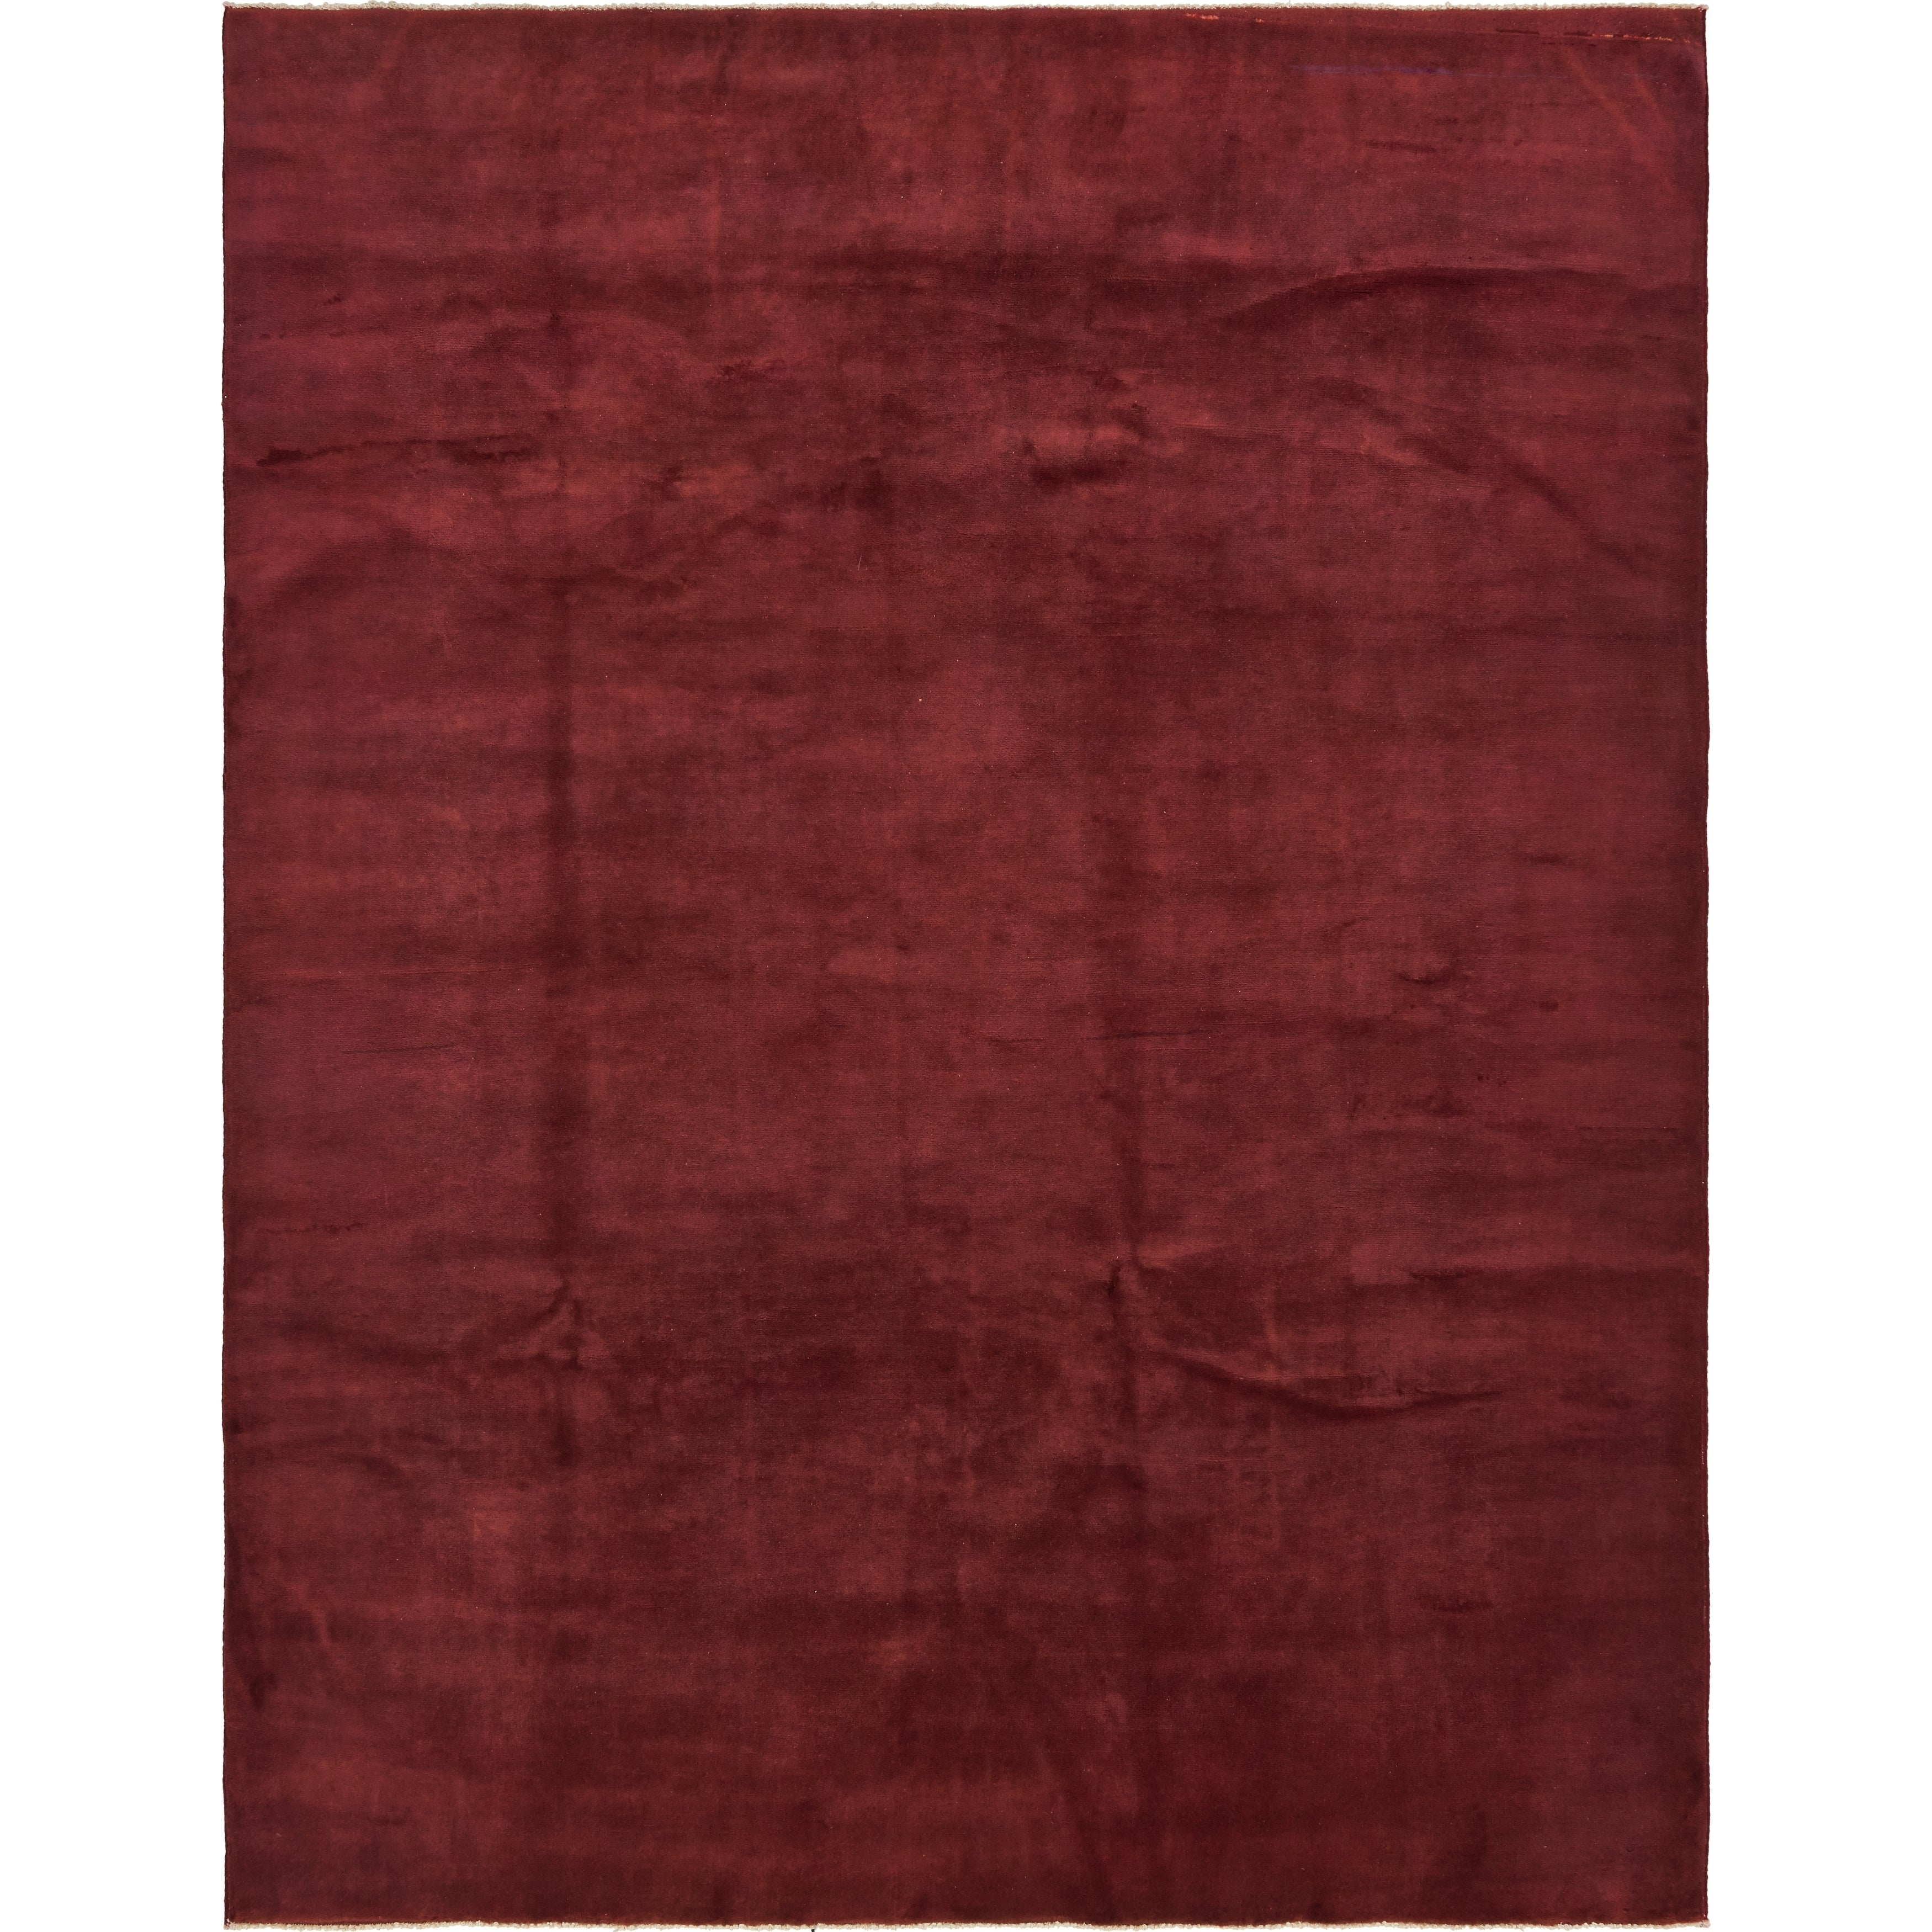 Hand Knotted Kashkuli Gabbeh Wool Area Rug - 6 8 x 8 7 (Burgundy - 6 8 x 8 7)